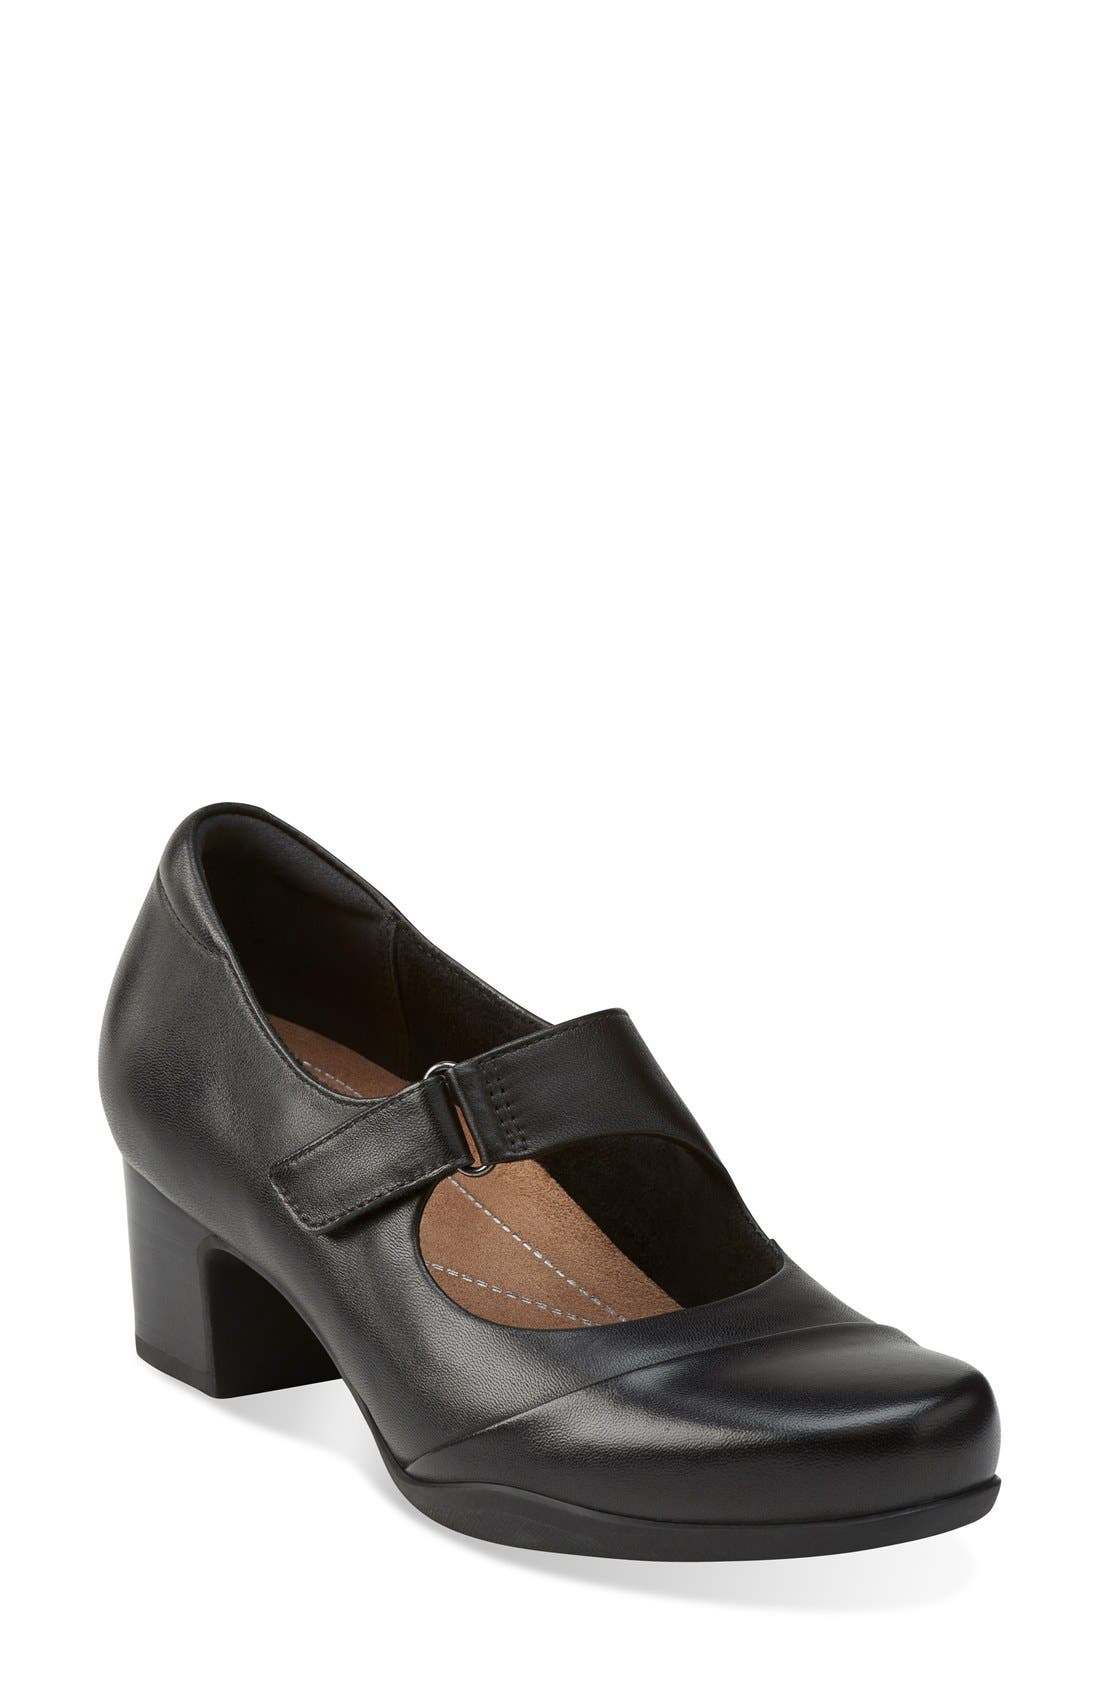 'Rosalyn Wren' Mary Jane Pump,                             Main thumbnail 1, color,                             BLACK LEATHER